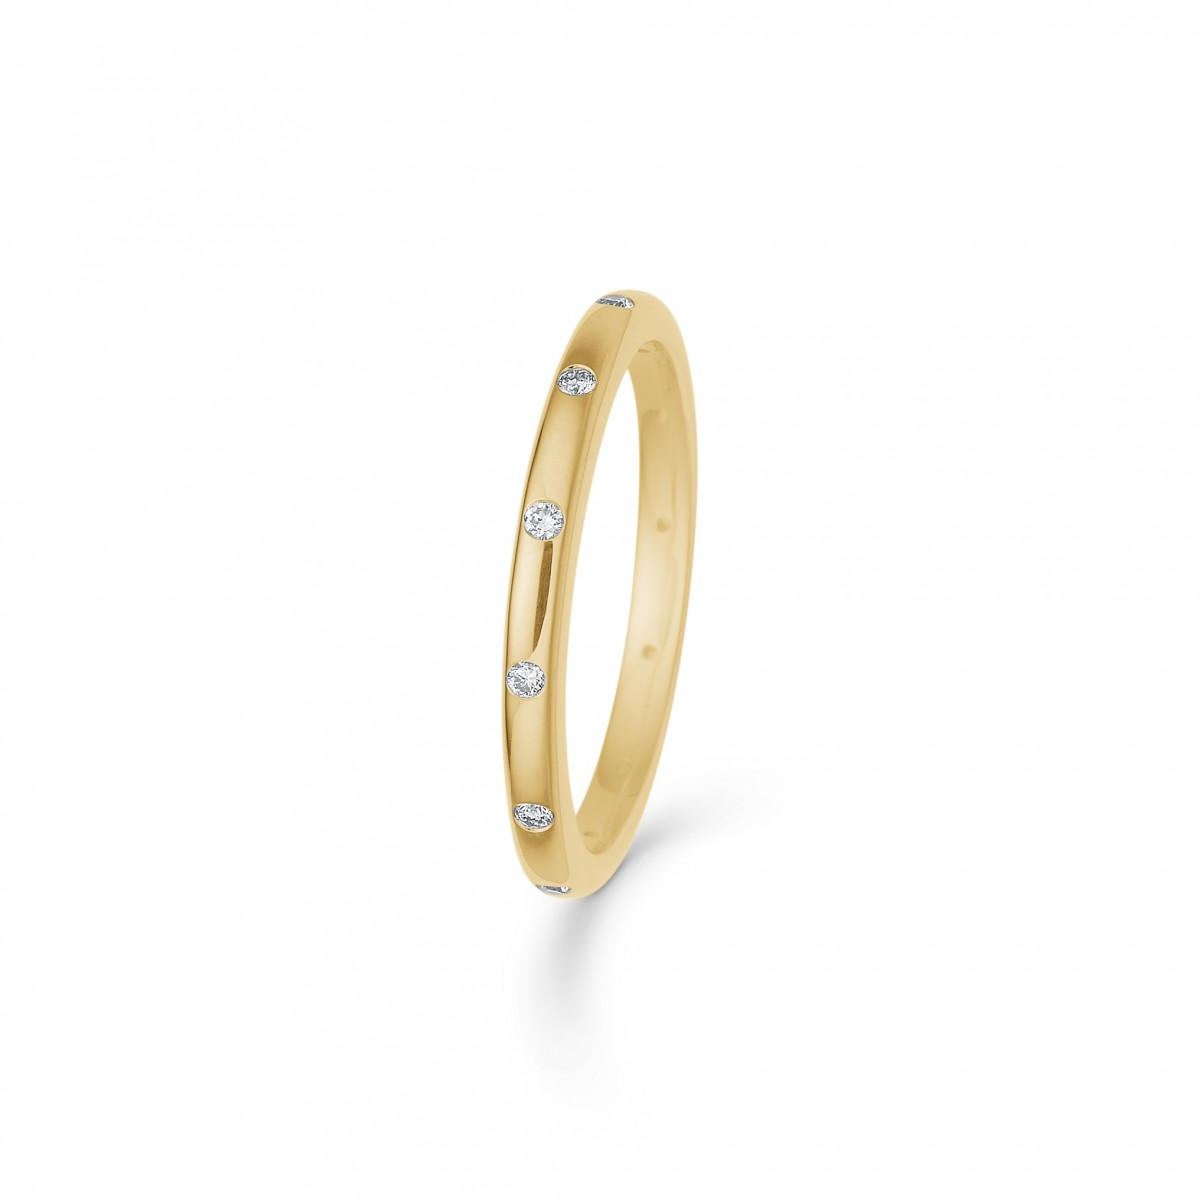 Poetry 1541042 ring